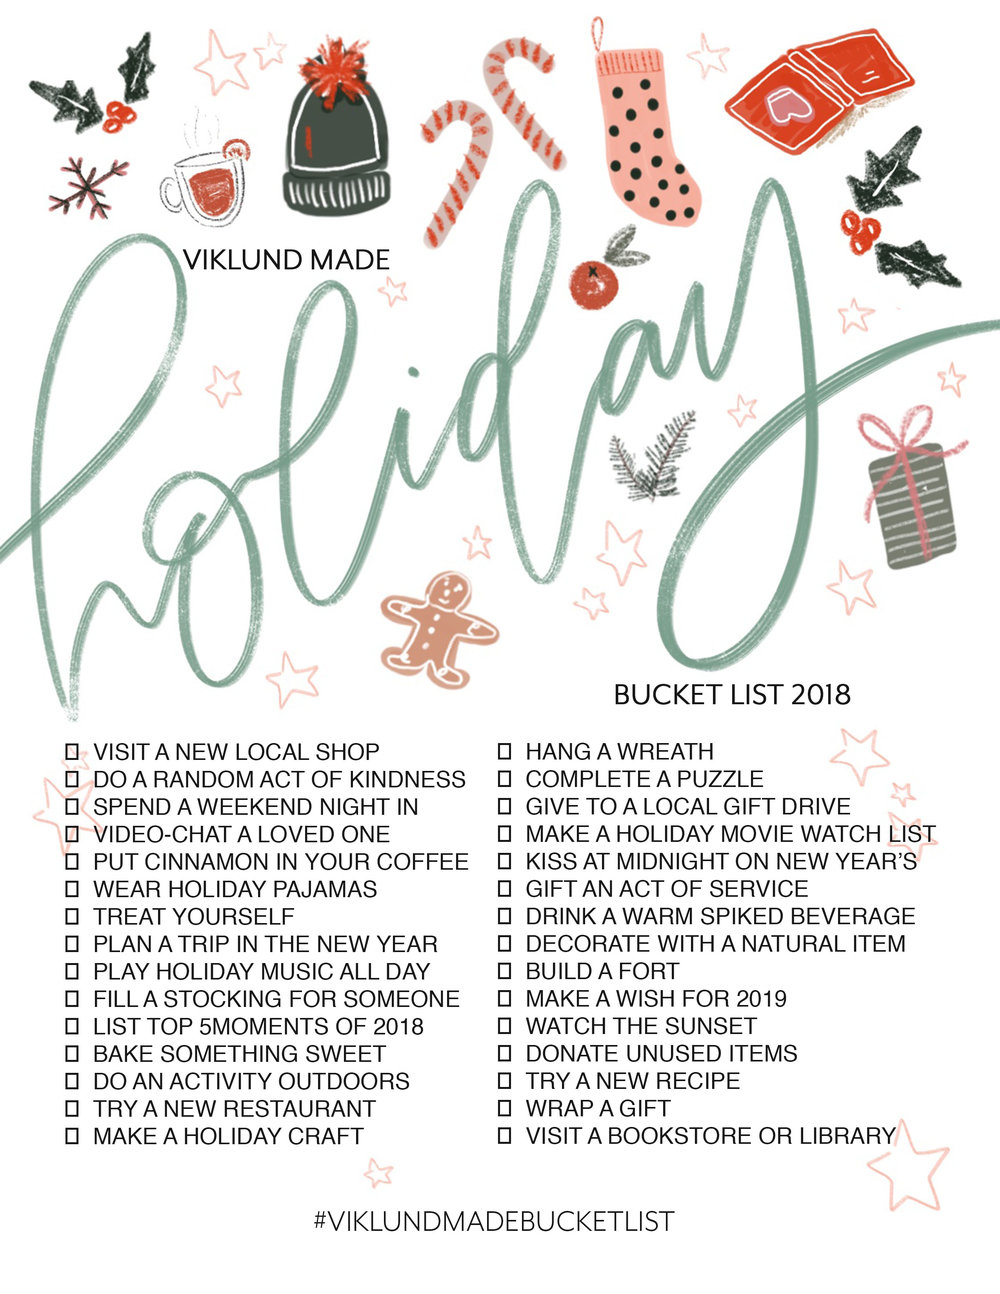 Viklund Made Holiday Bucket List 2018